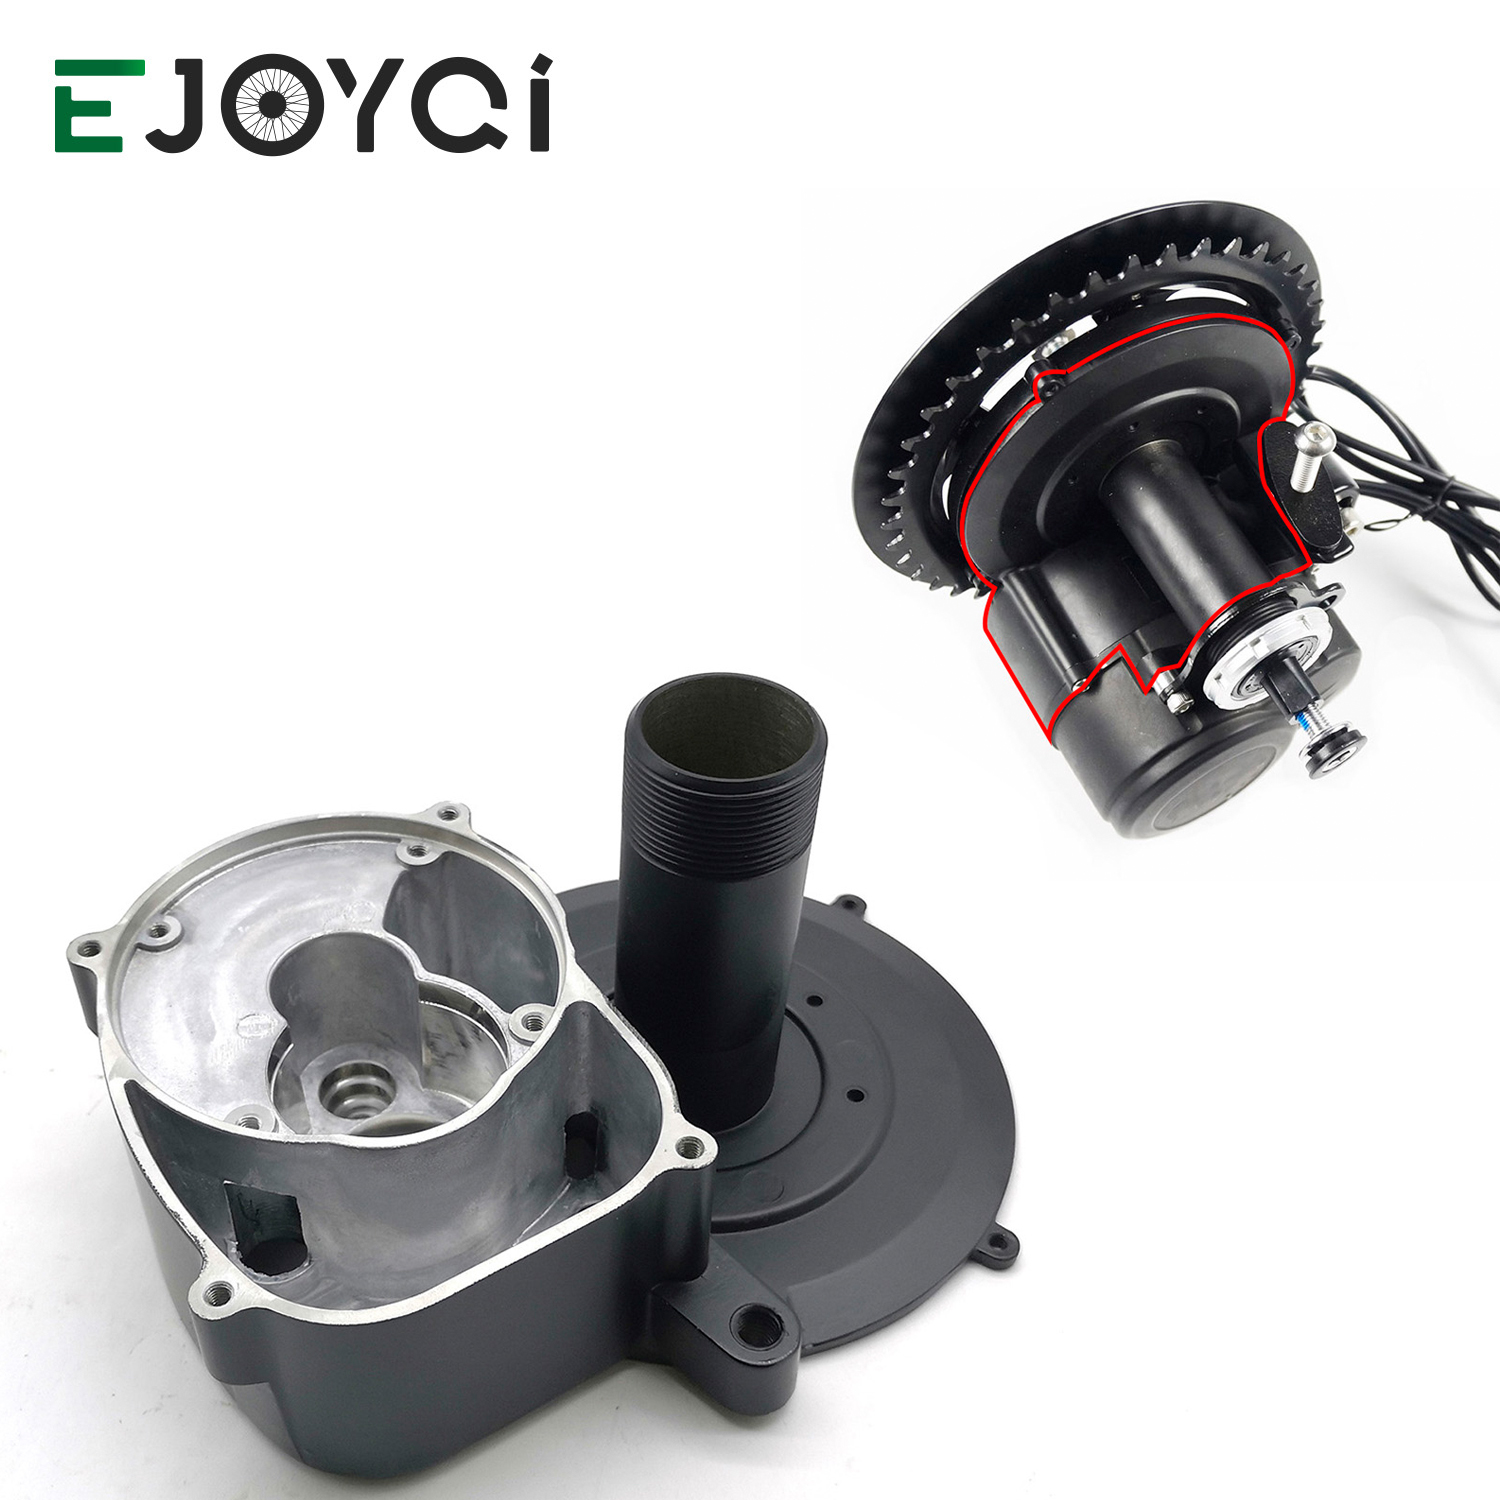 TSDZ 2 TongSheng Mid Motor Hub Outer Casing Electric Bicycle Ebike Parts Accessories Hub Shell For TSDZ 2 Central Motor